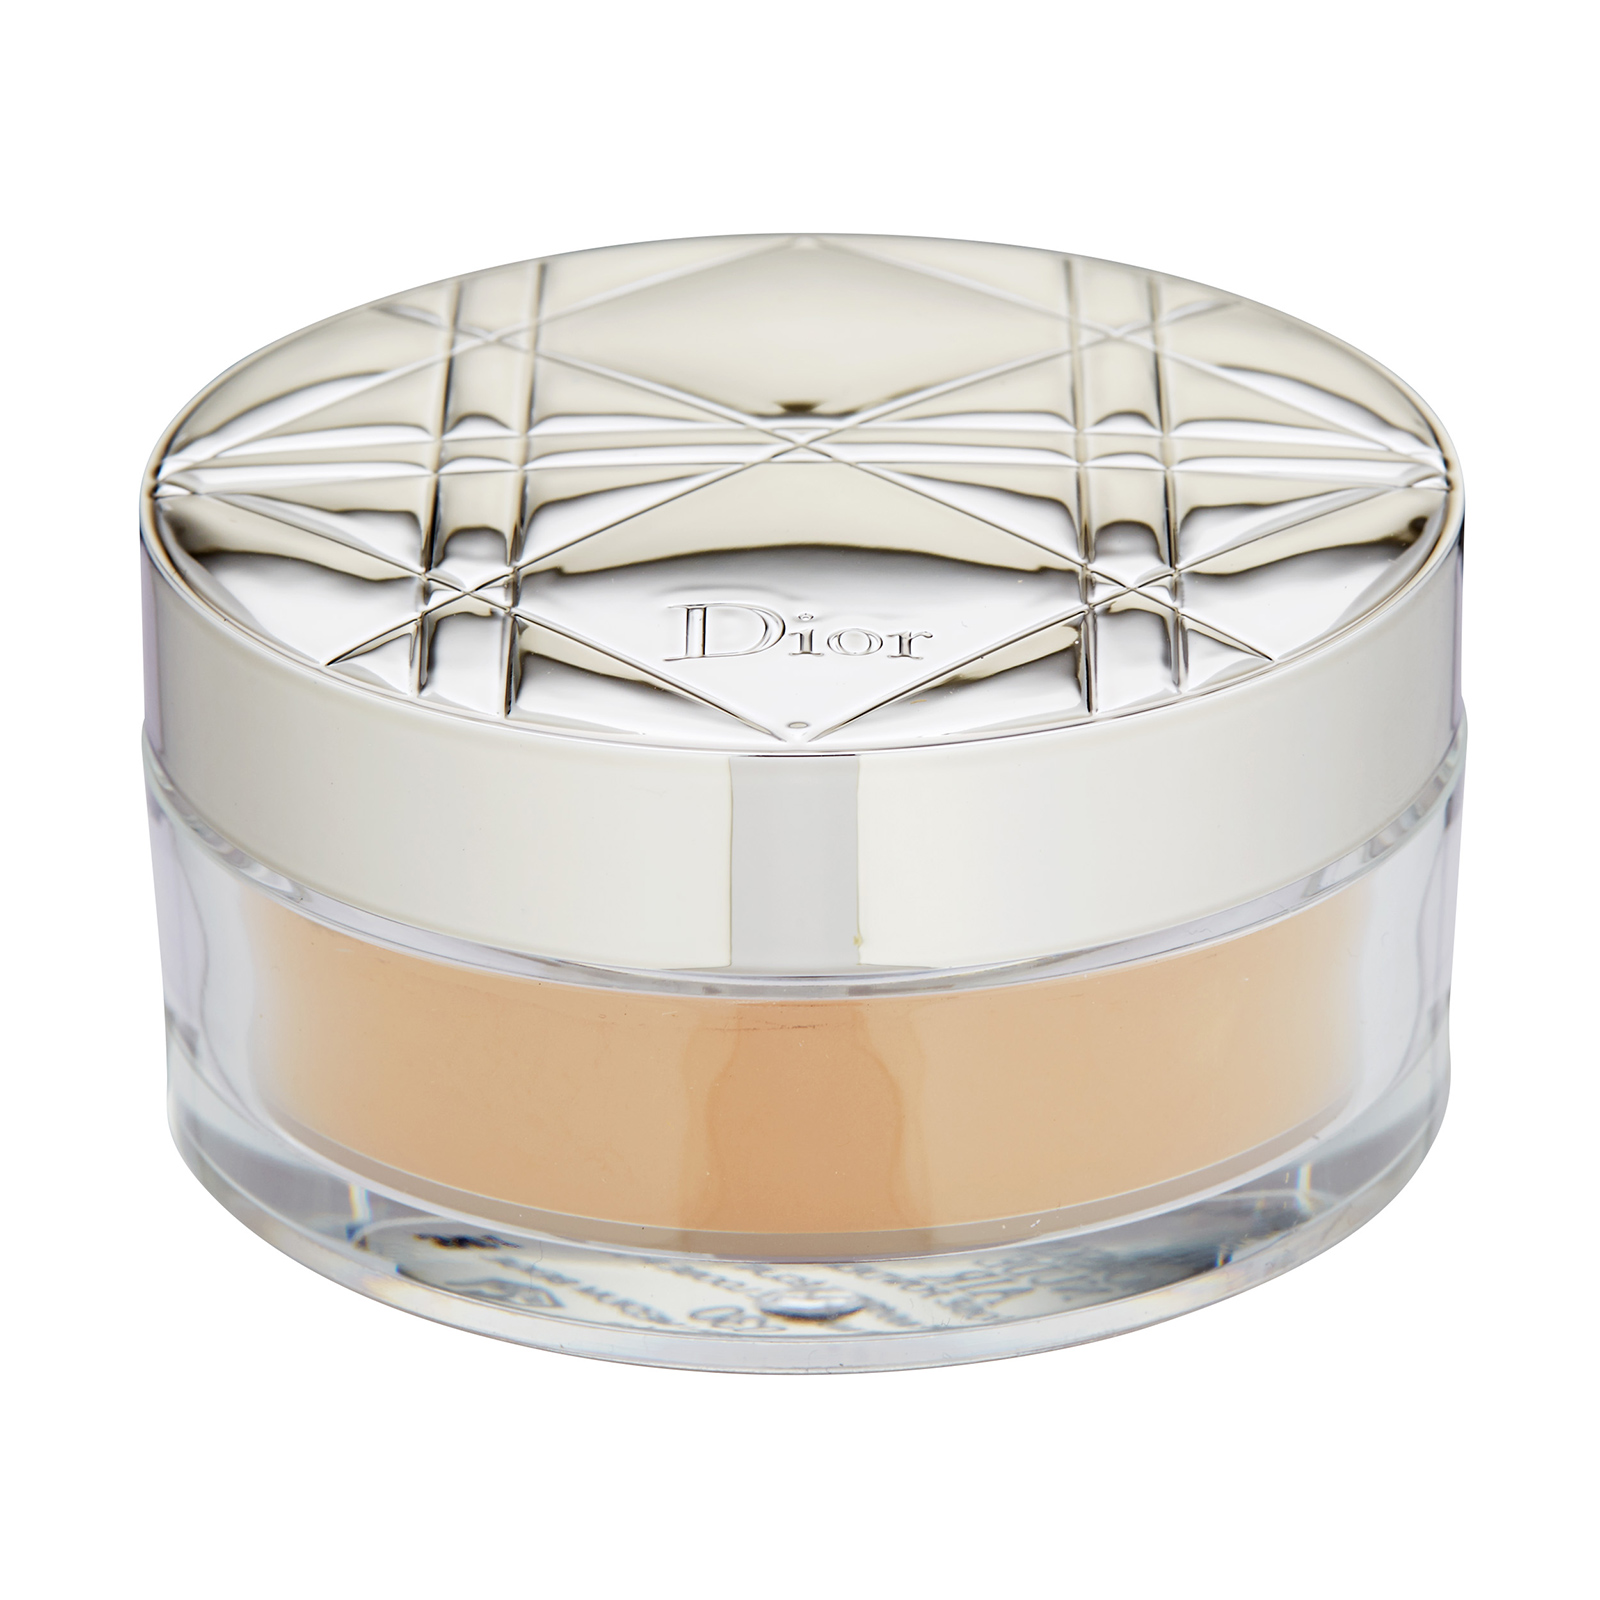 Christian Dior DiorSkin Nude Air  Healthy Glow Invisible Loose Powder 030 Medium Beige, 0.56oz, 16g from Cosme-De.com